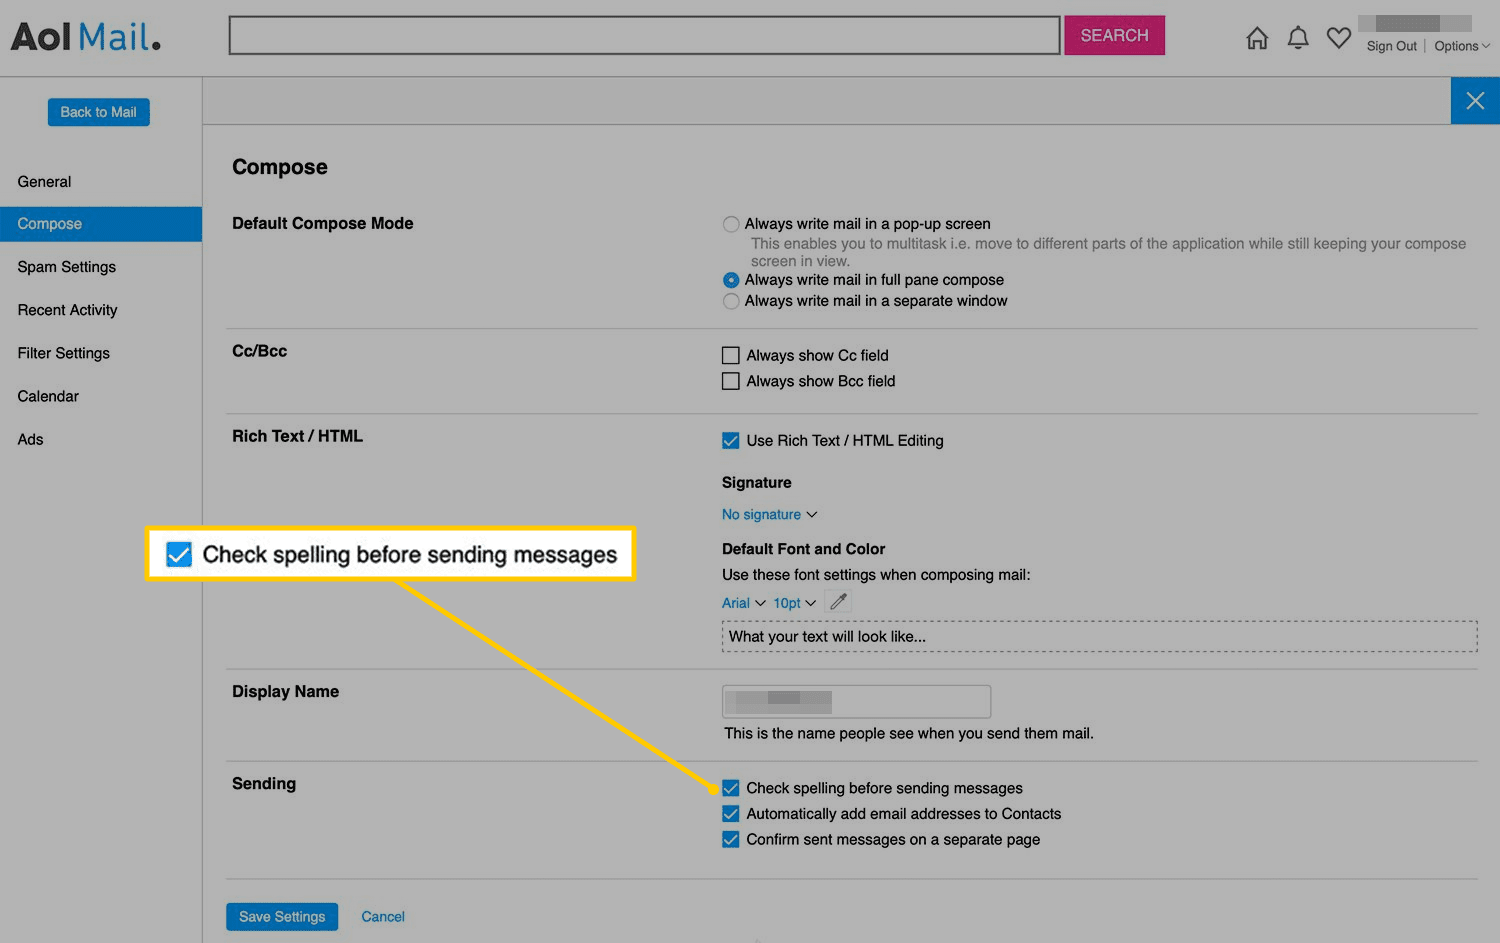 Check spelling before sending messages checkbox in AOL Mail on the web